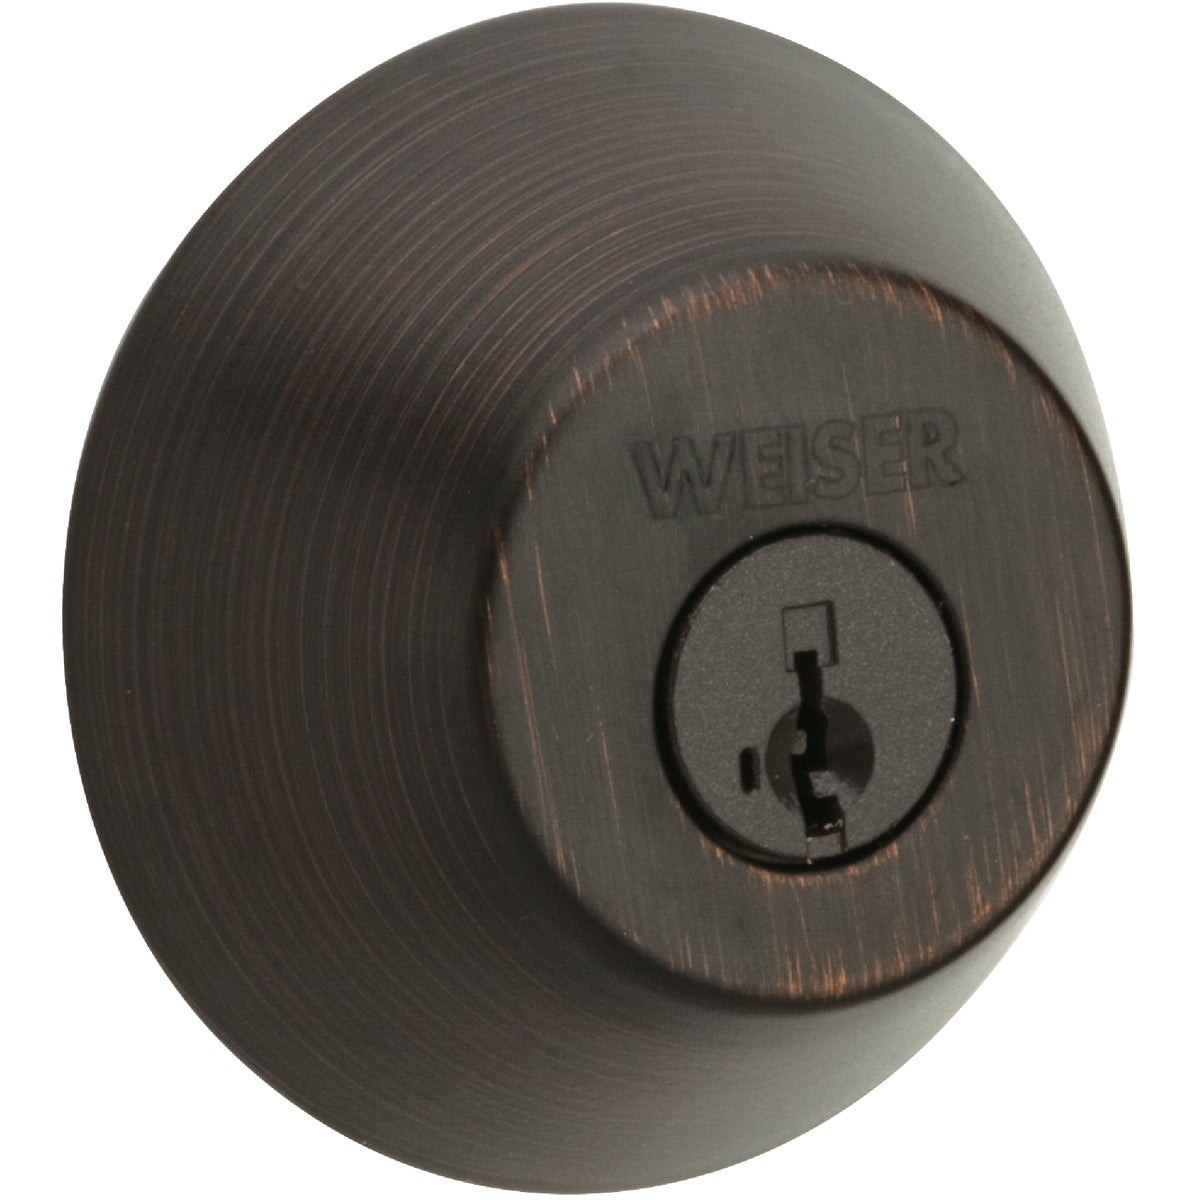 VB 1CYL SK DEADBOLT - GD9471X 11P SMT K4 by Weiser Lock